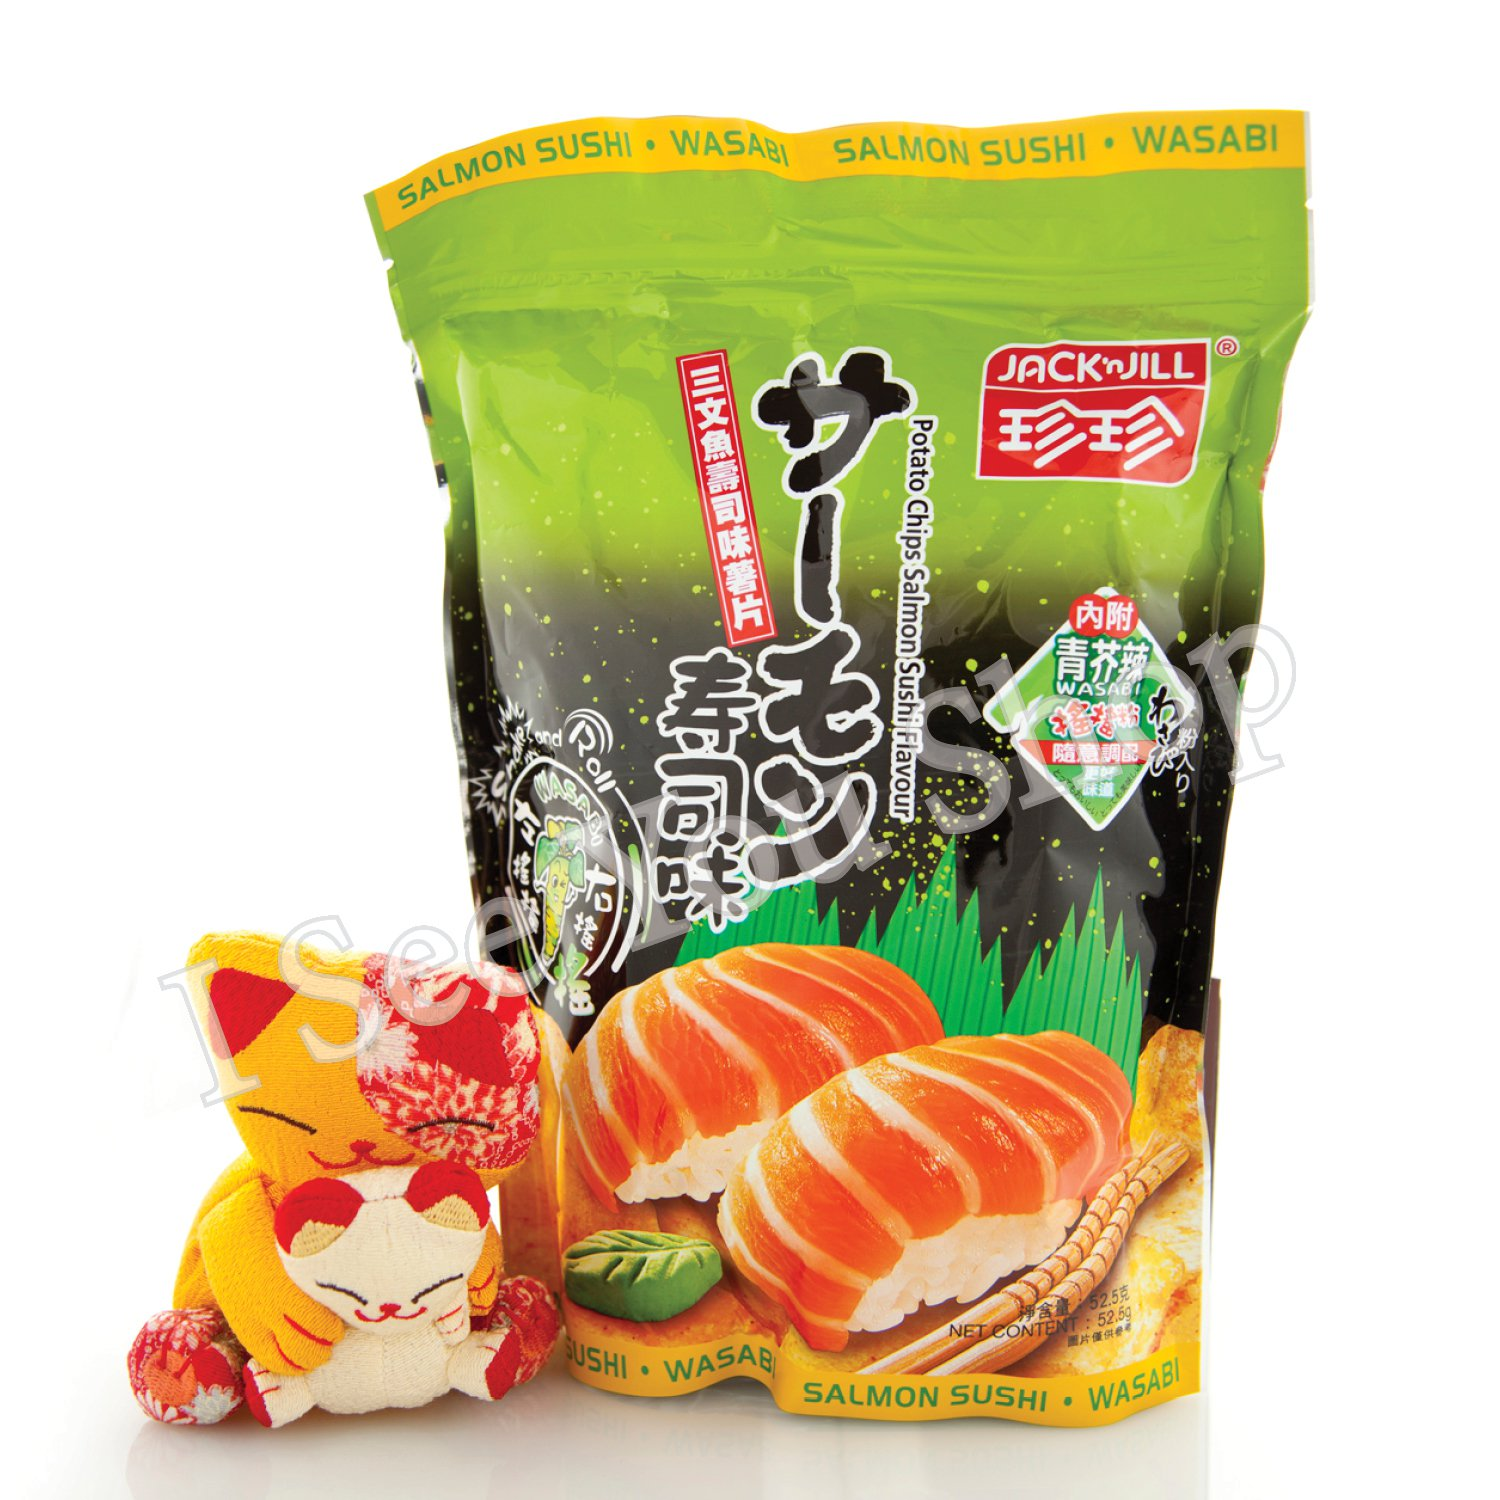 �����壽���� Jack'n Jill Salmon Sushi Wasabi Flavored Potato Chips 52.5g